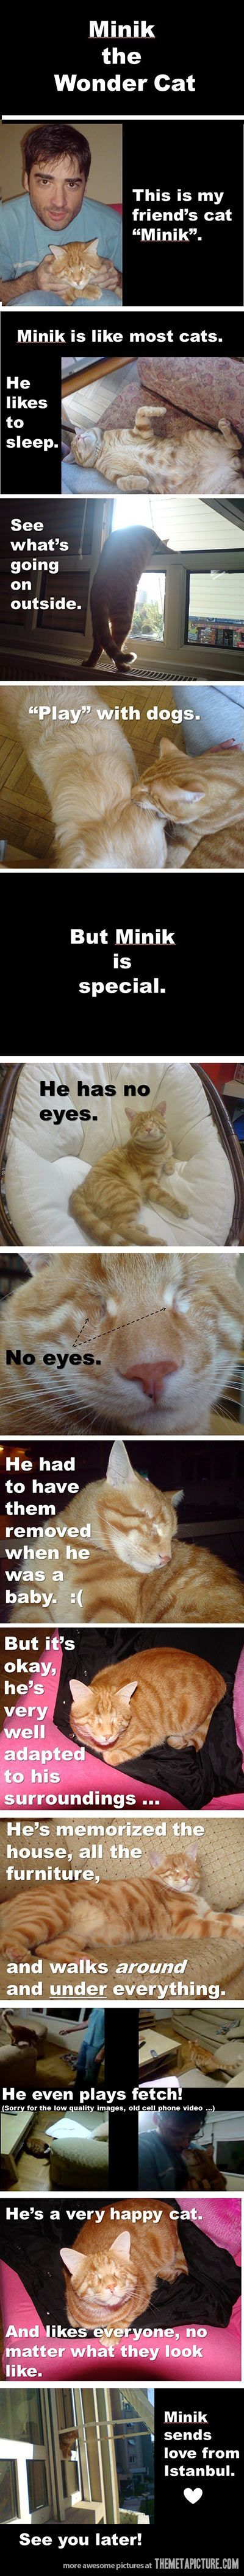 This cat is special…